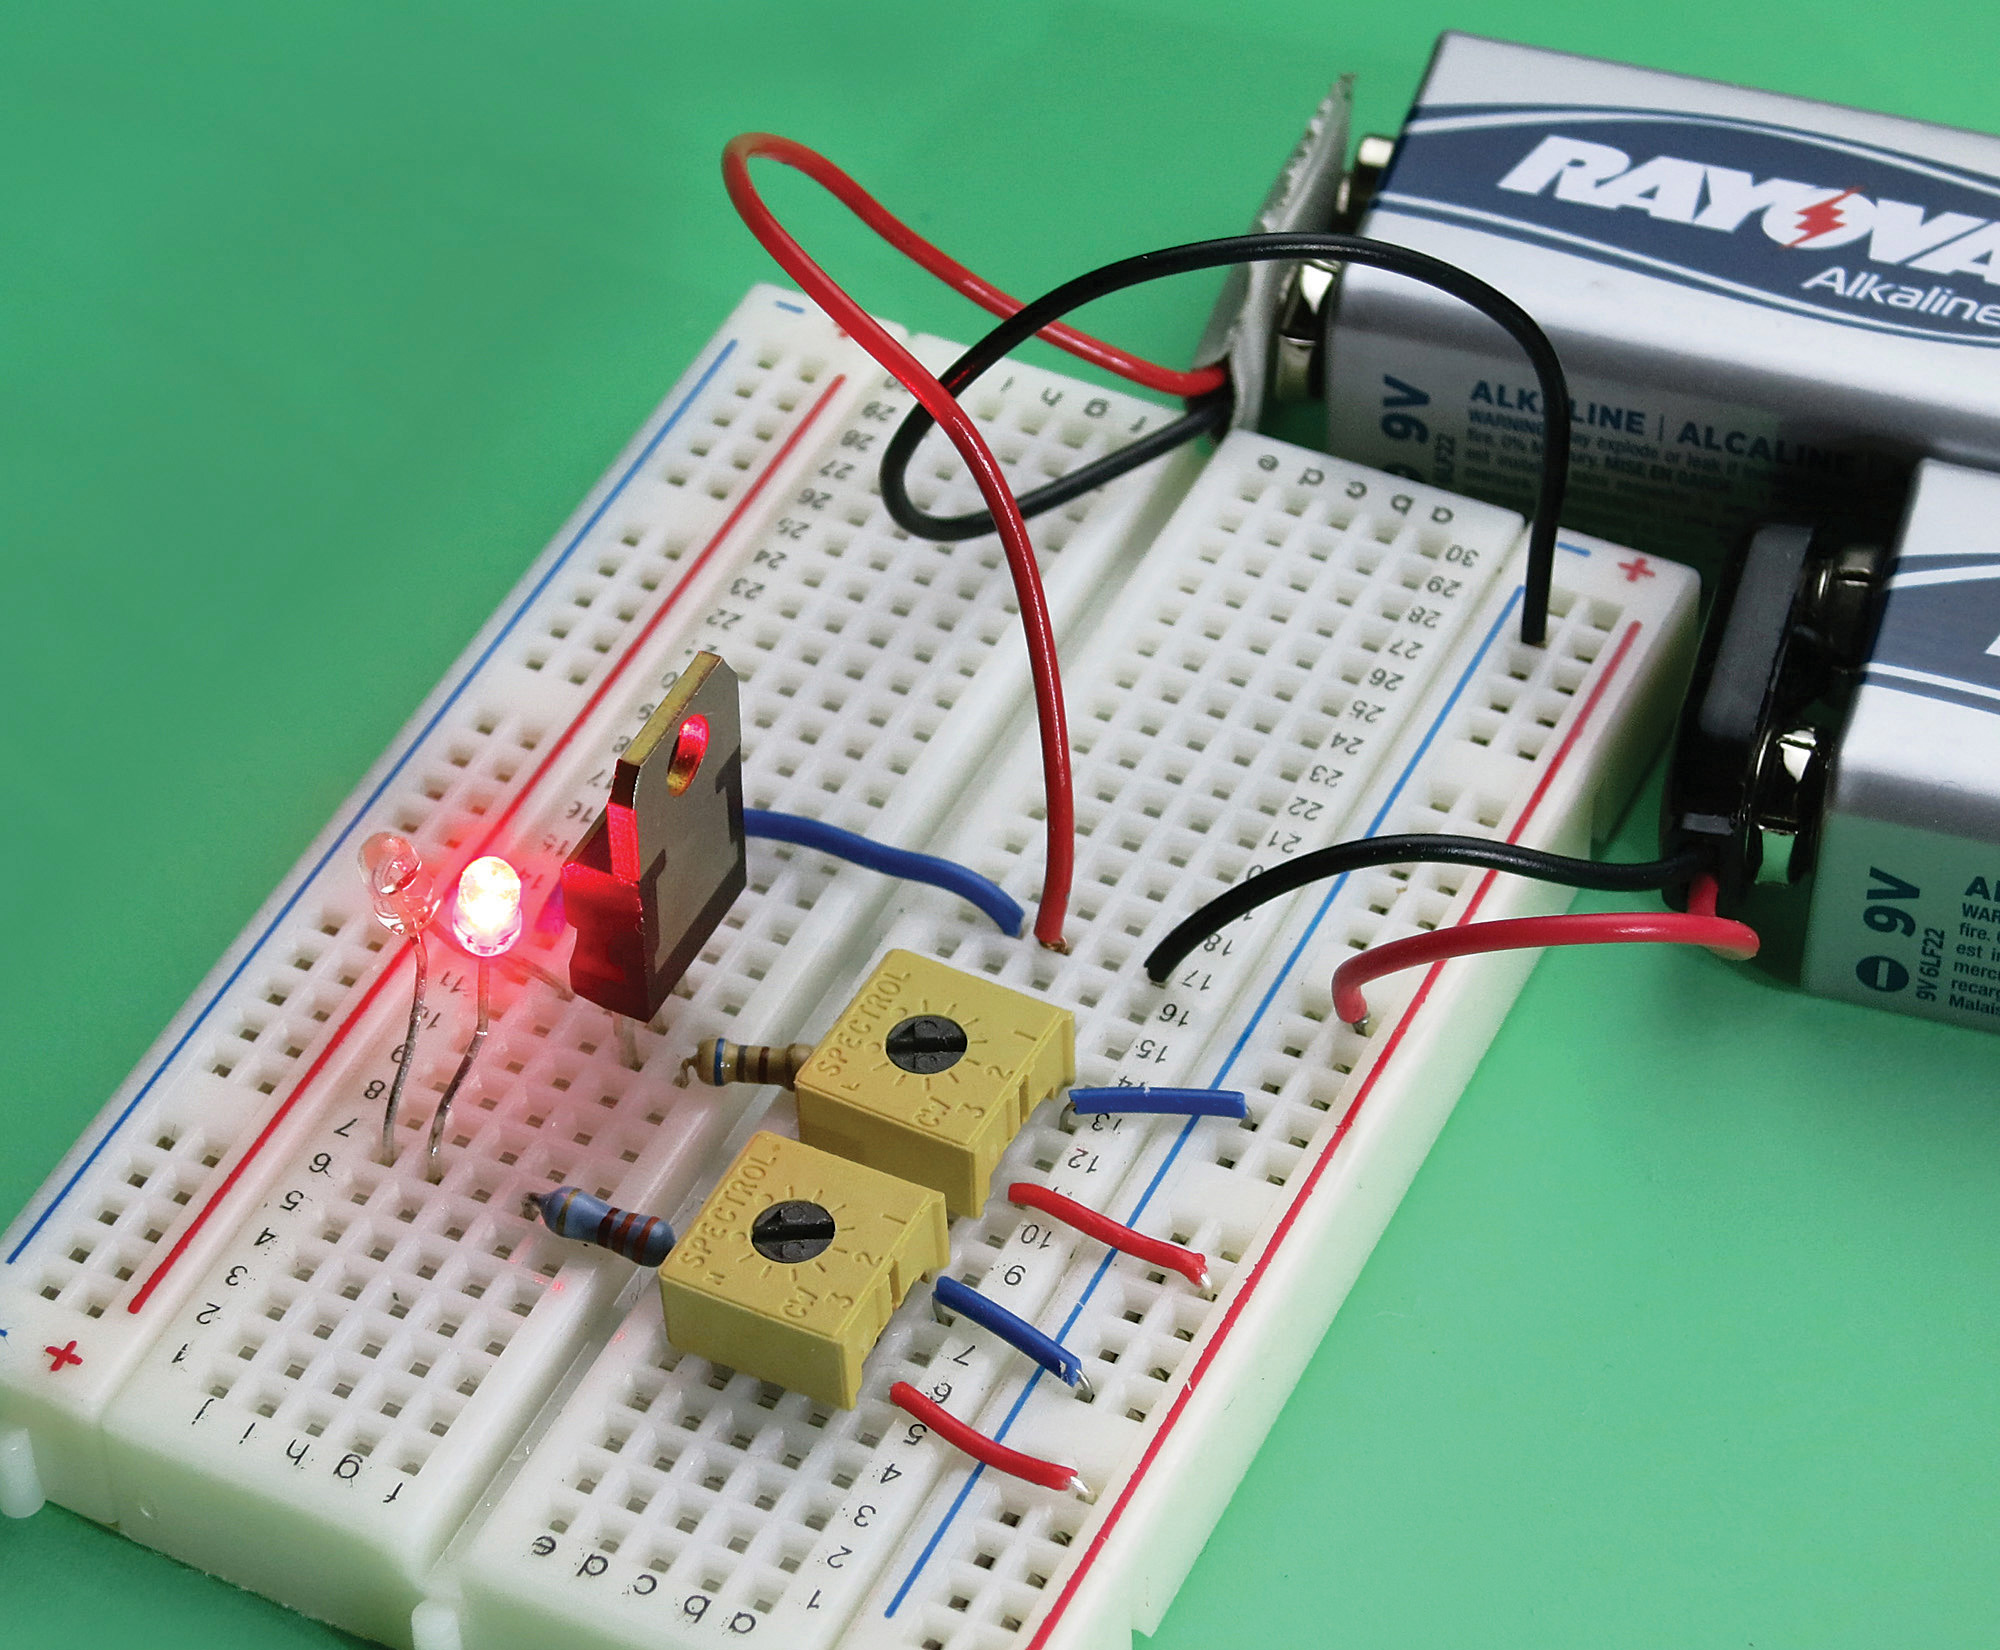 The breadboarded layout.